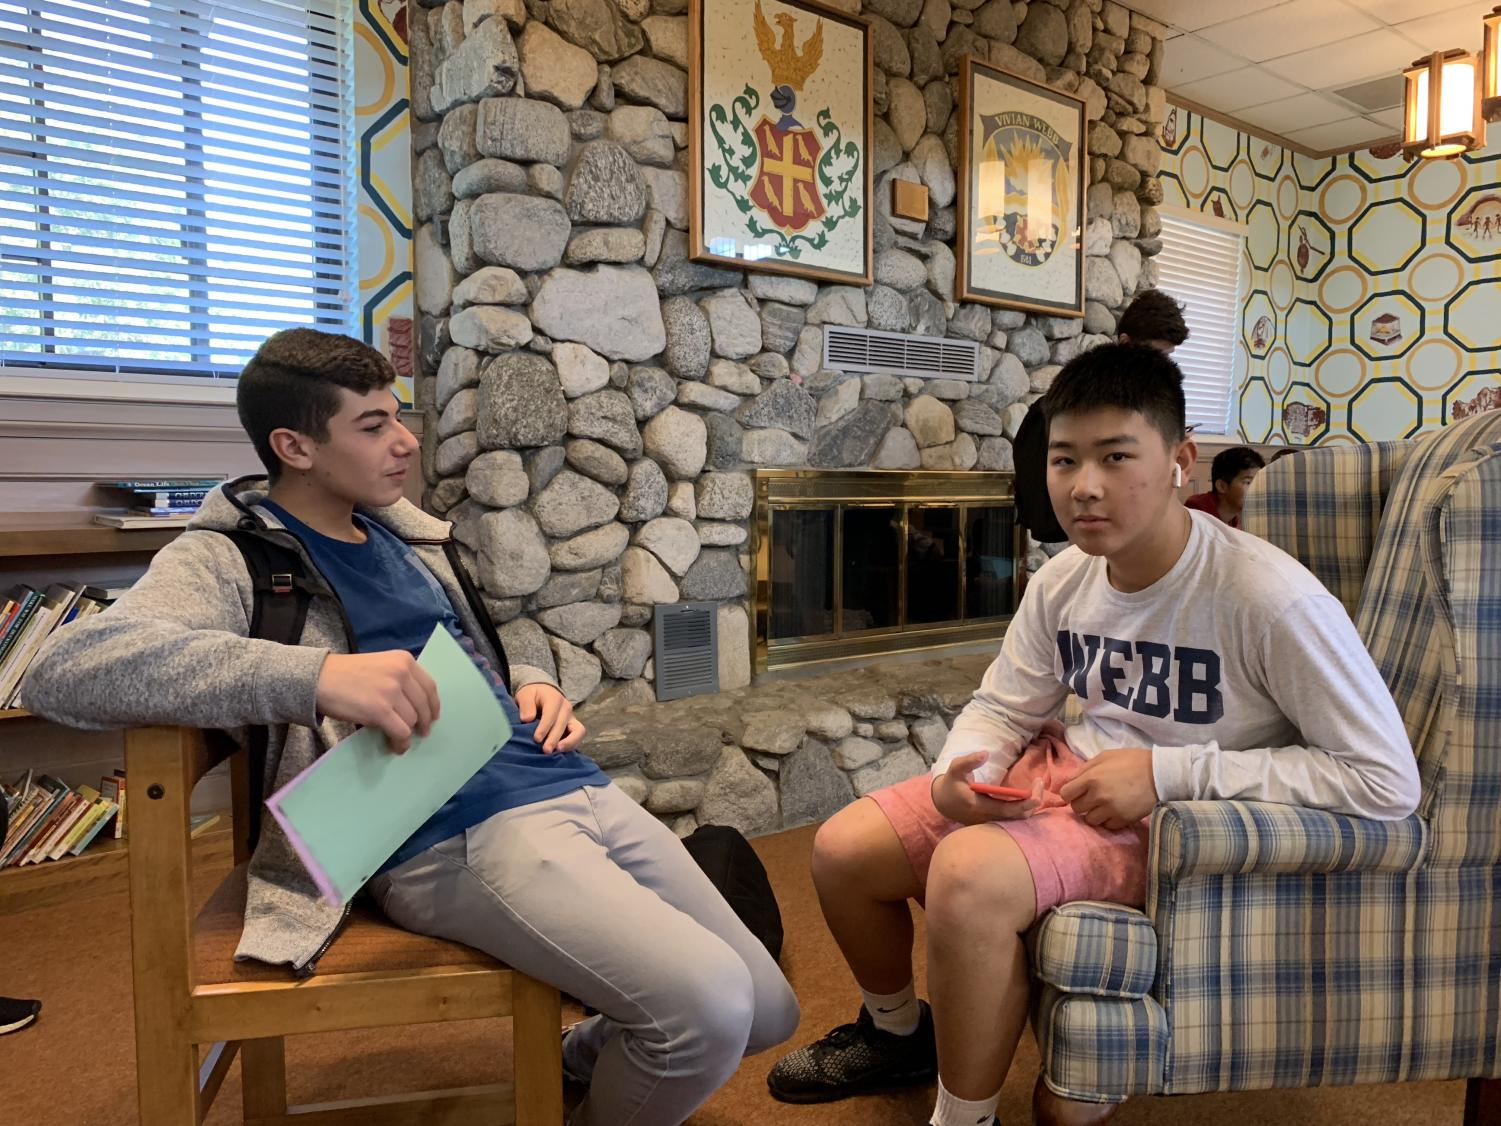 Richard Alrachid ('22) and Brian Yeung ('22) talk while wearing AirPods.